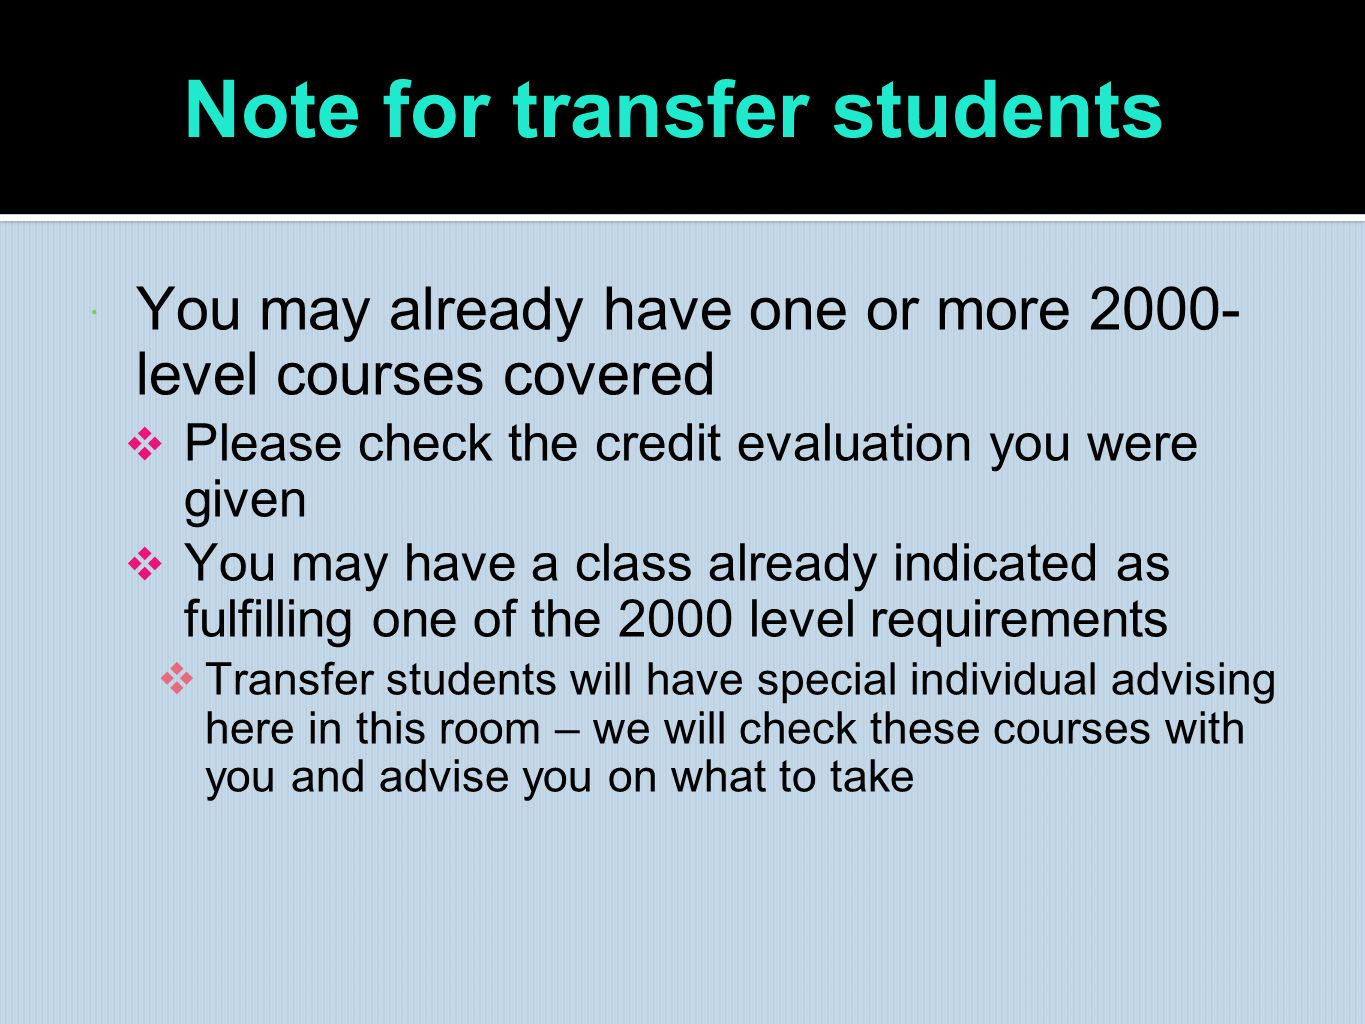 Note for transfer students: